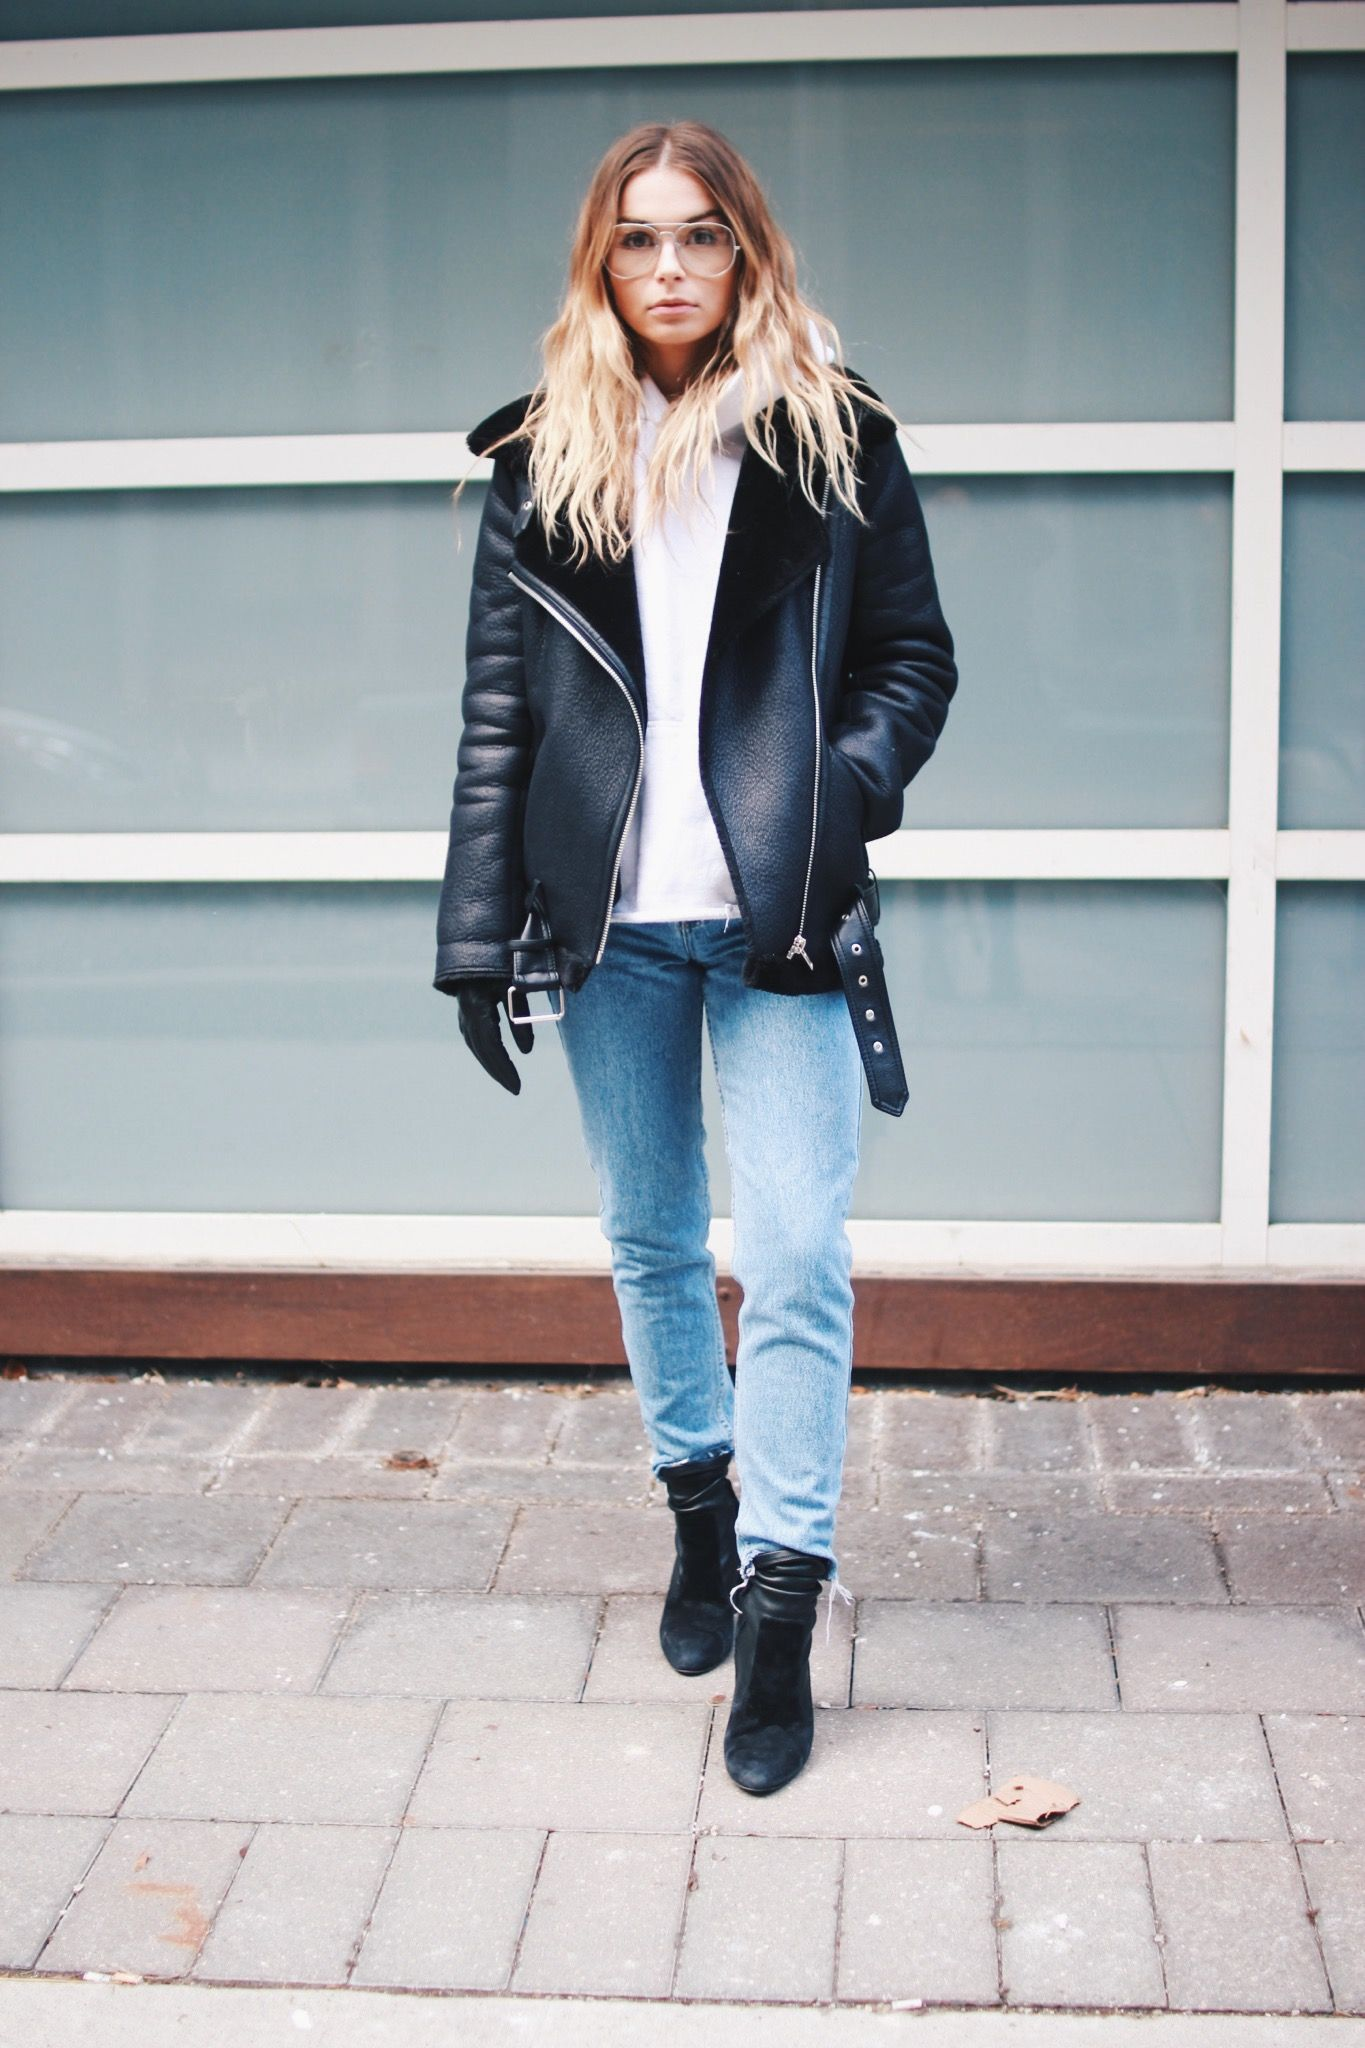 COLD WEATHER OUTFITS — allegralouise